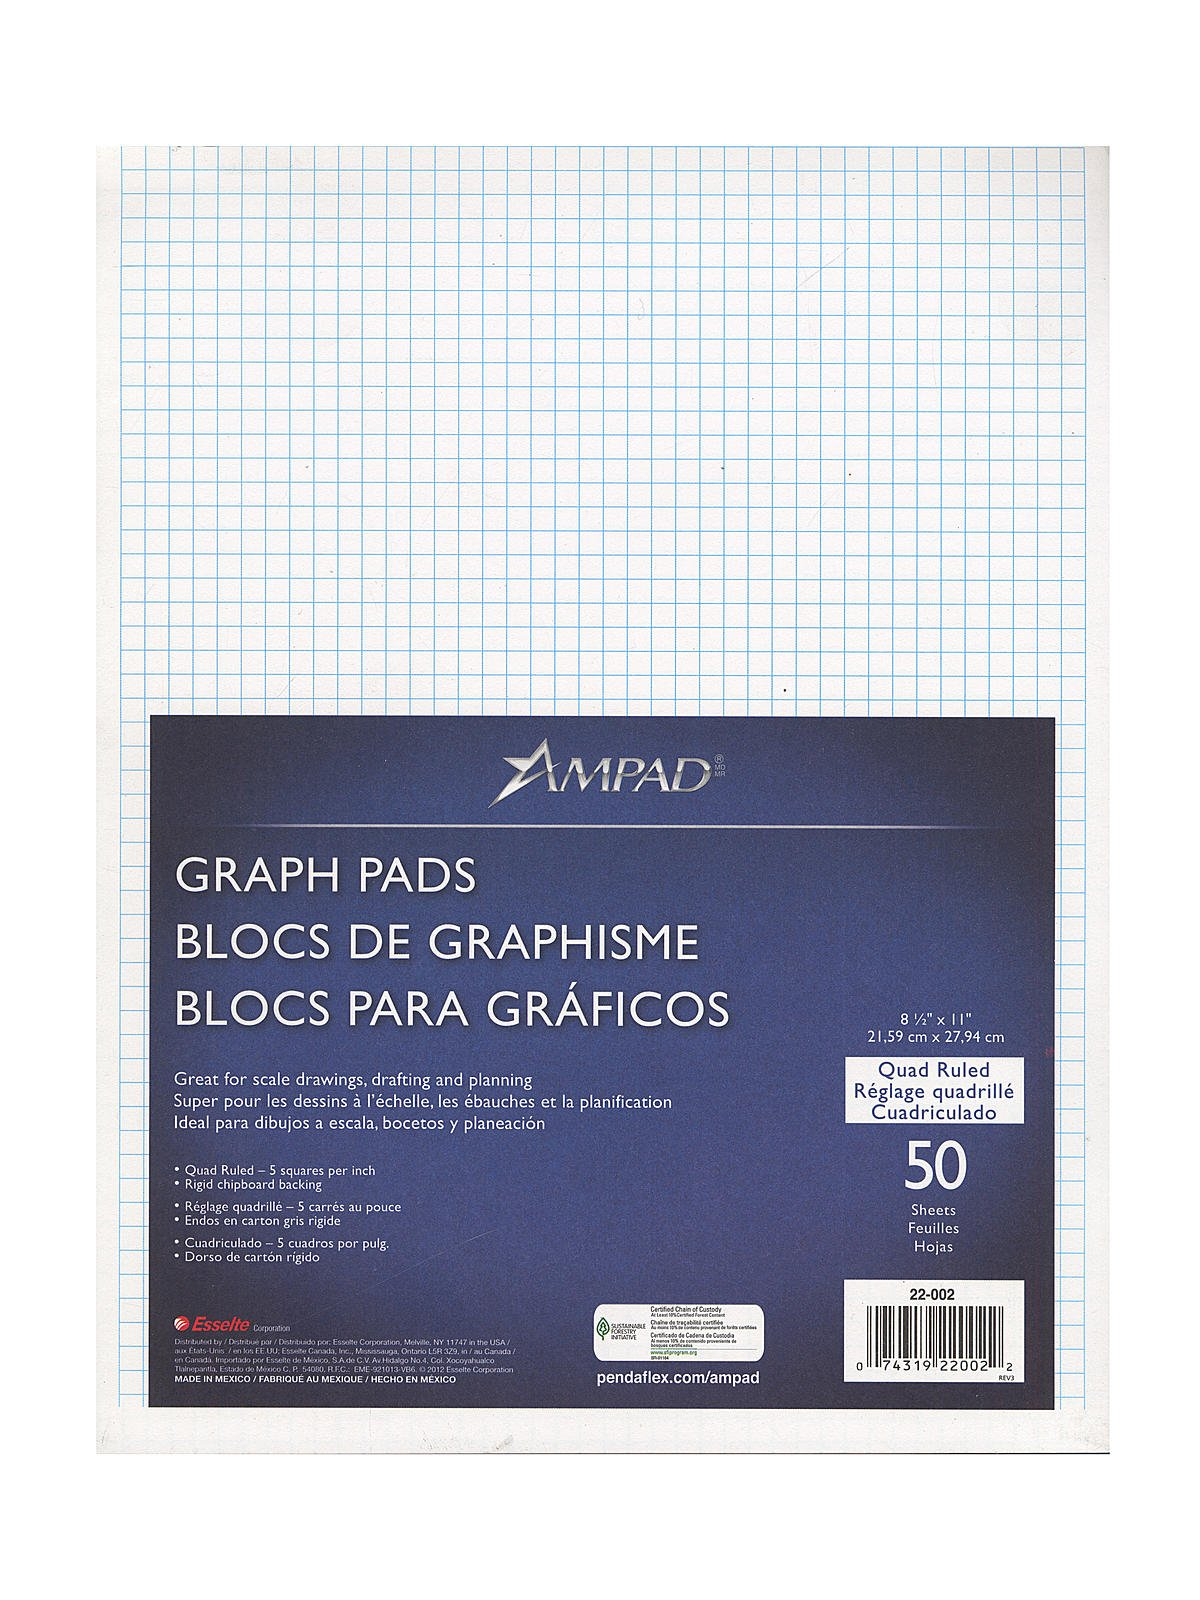 Ampad Evidence Quad Pads 5 x 5 8 1/2 in. x 11 in. [PACK OF 5 ]